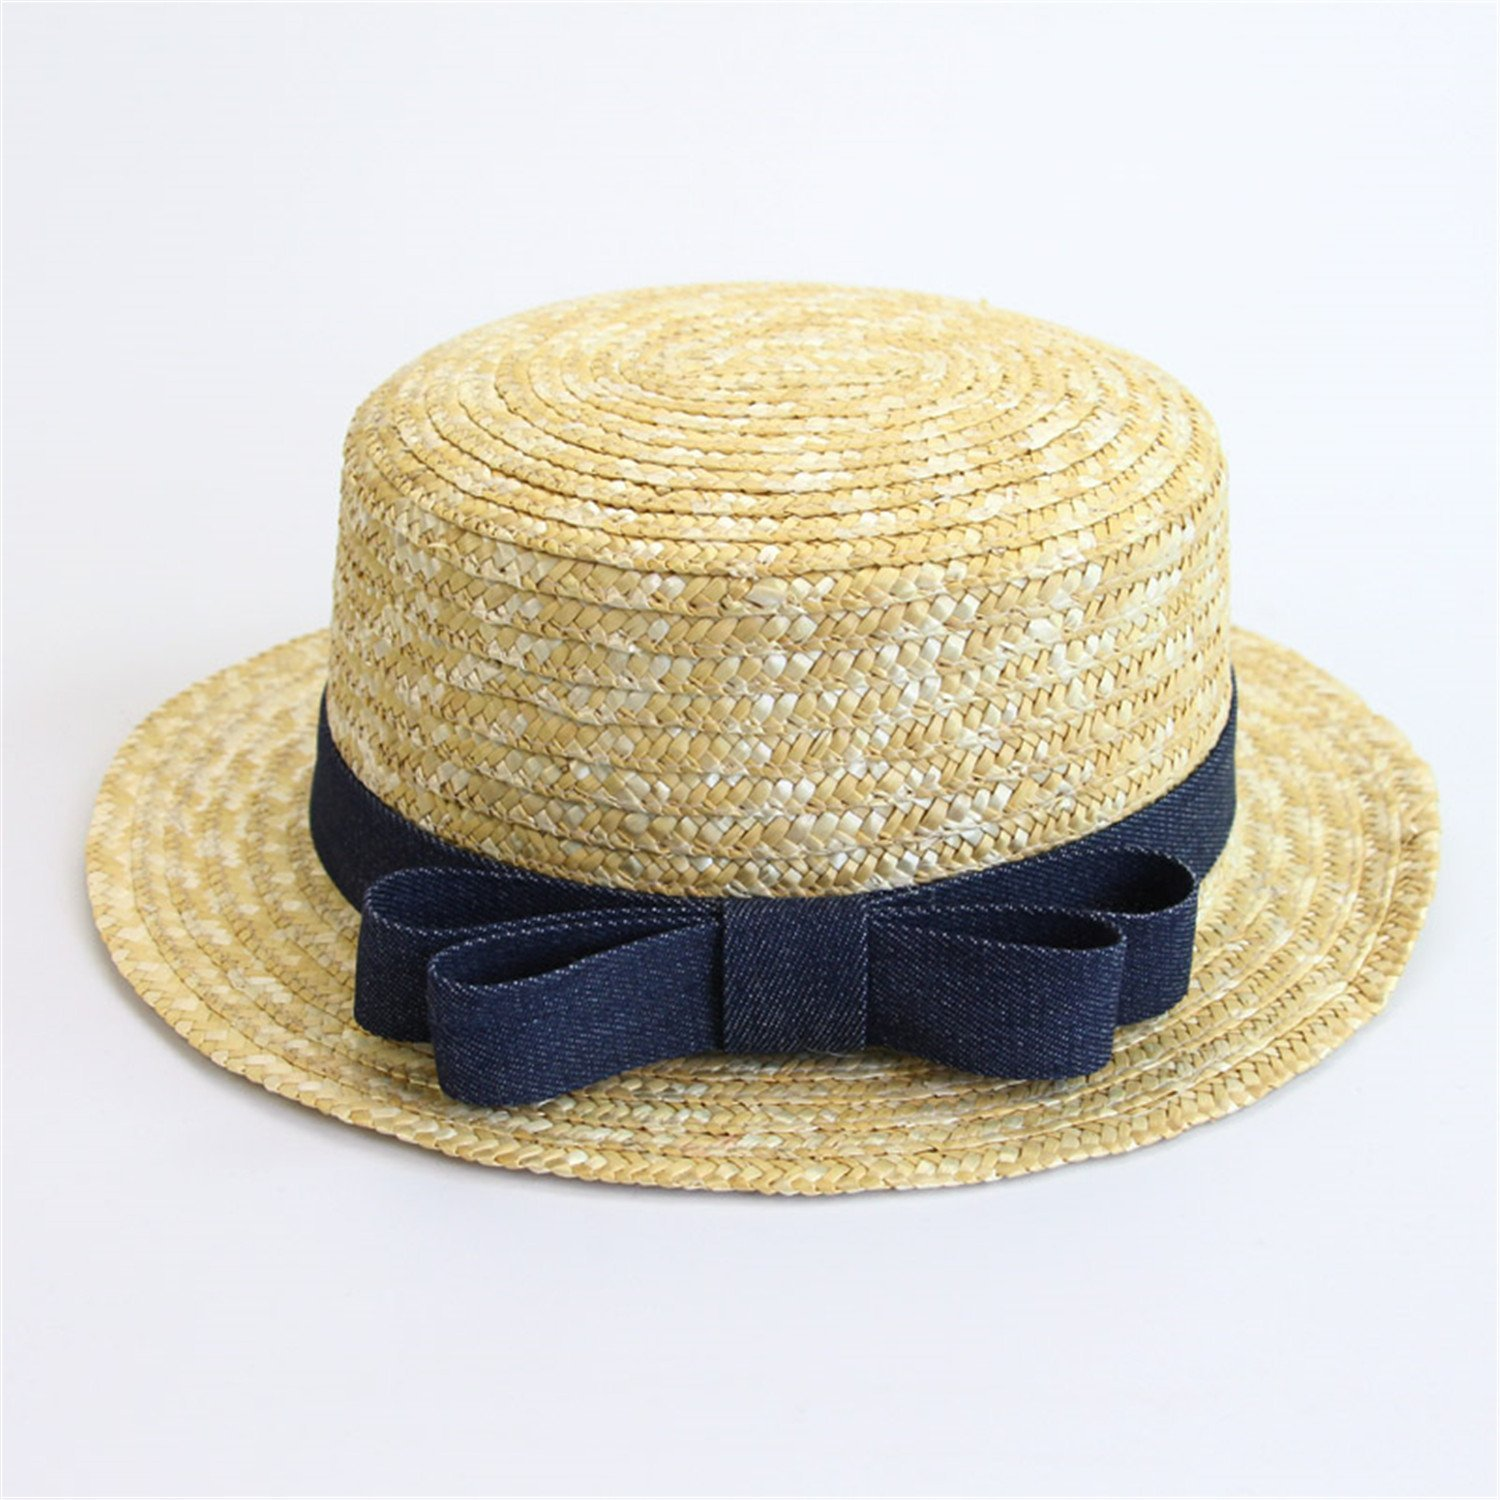 f24b43c6b5f Get Quotations · Fashion Lady Boater Sun Caps Ribbon Round Flat Top Straw  Beach Hat Panama Hat Summer Hats